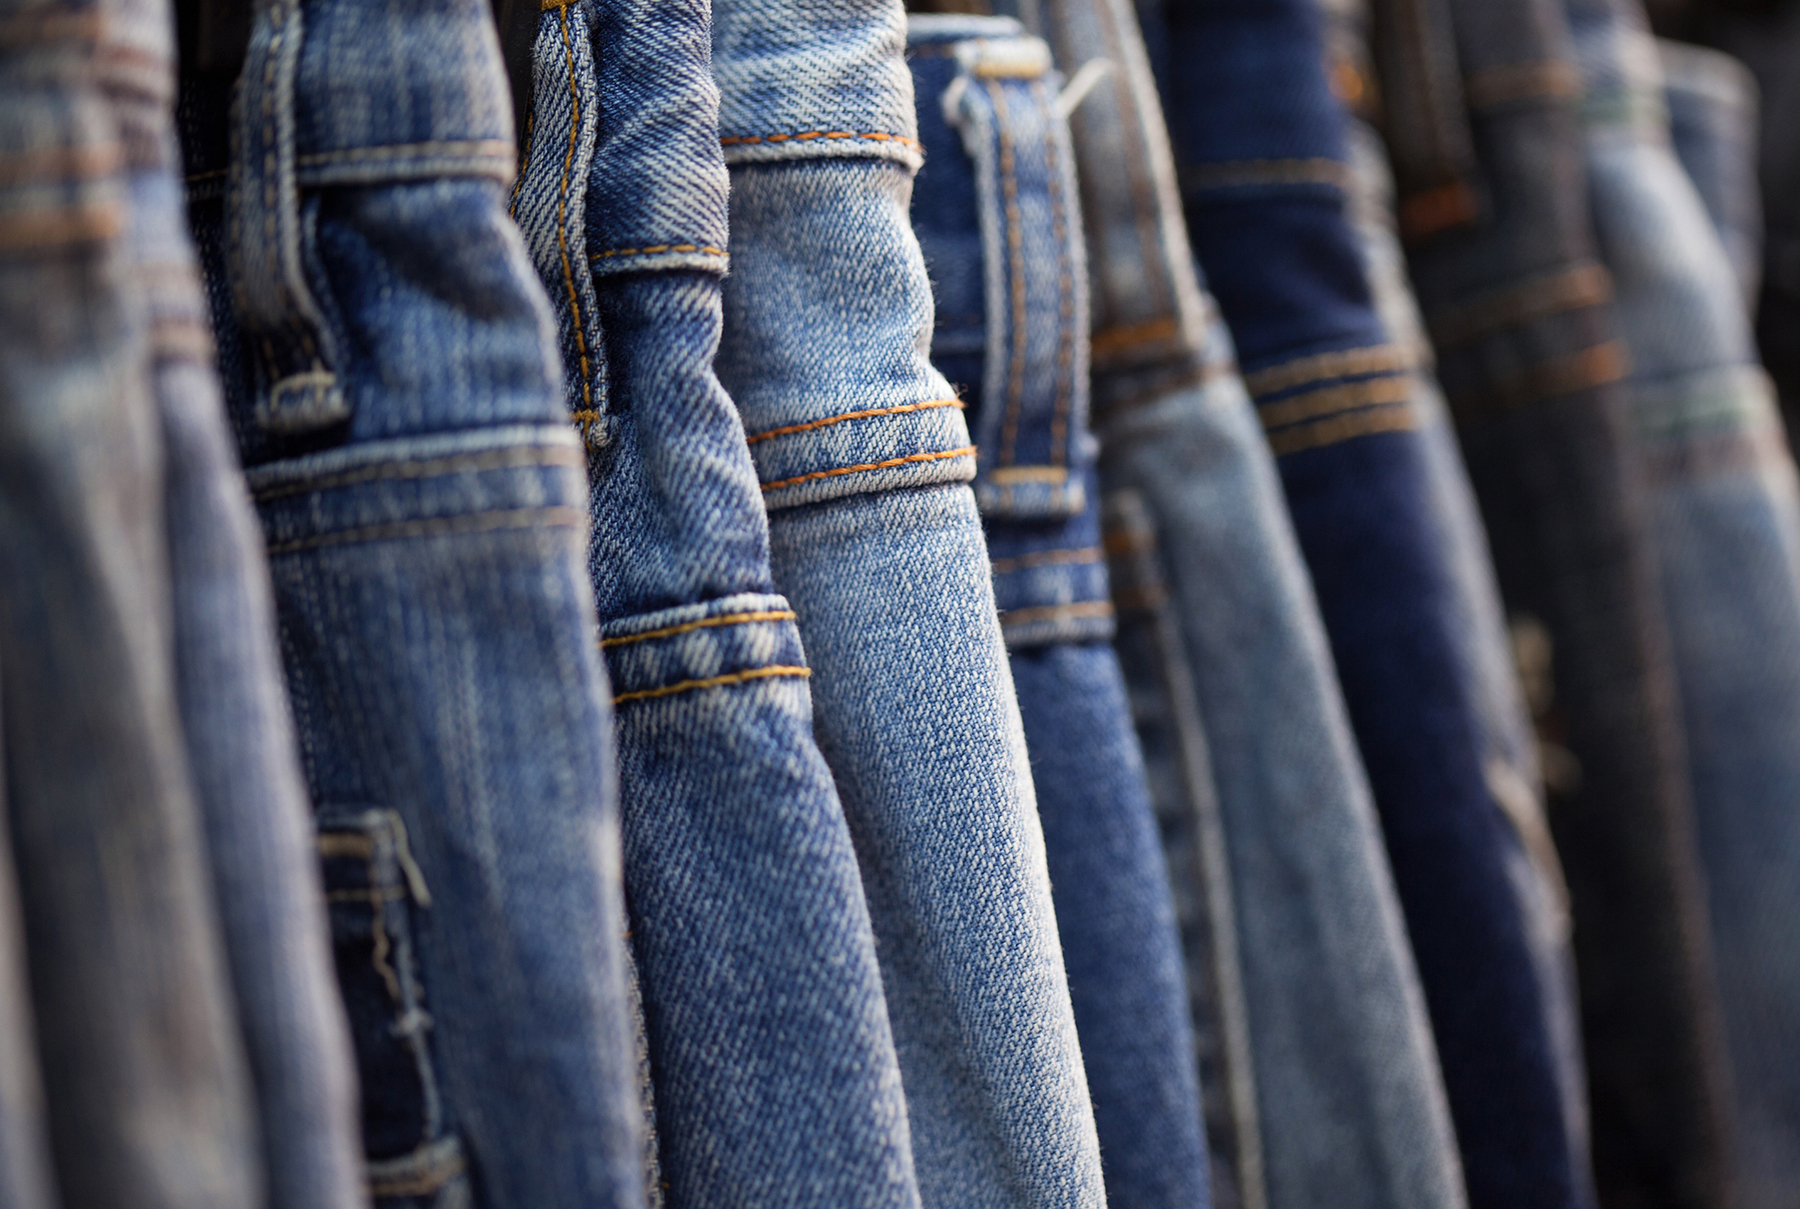 Hanging pairs of jeans